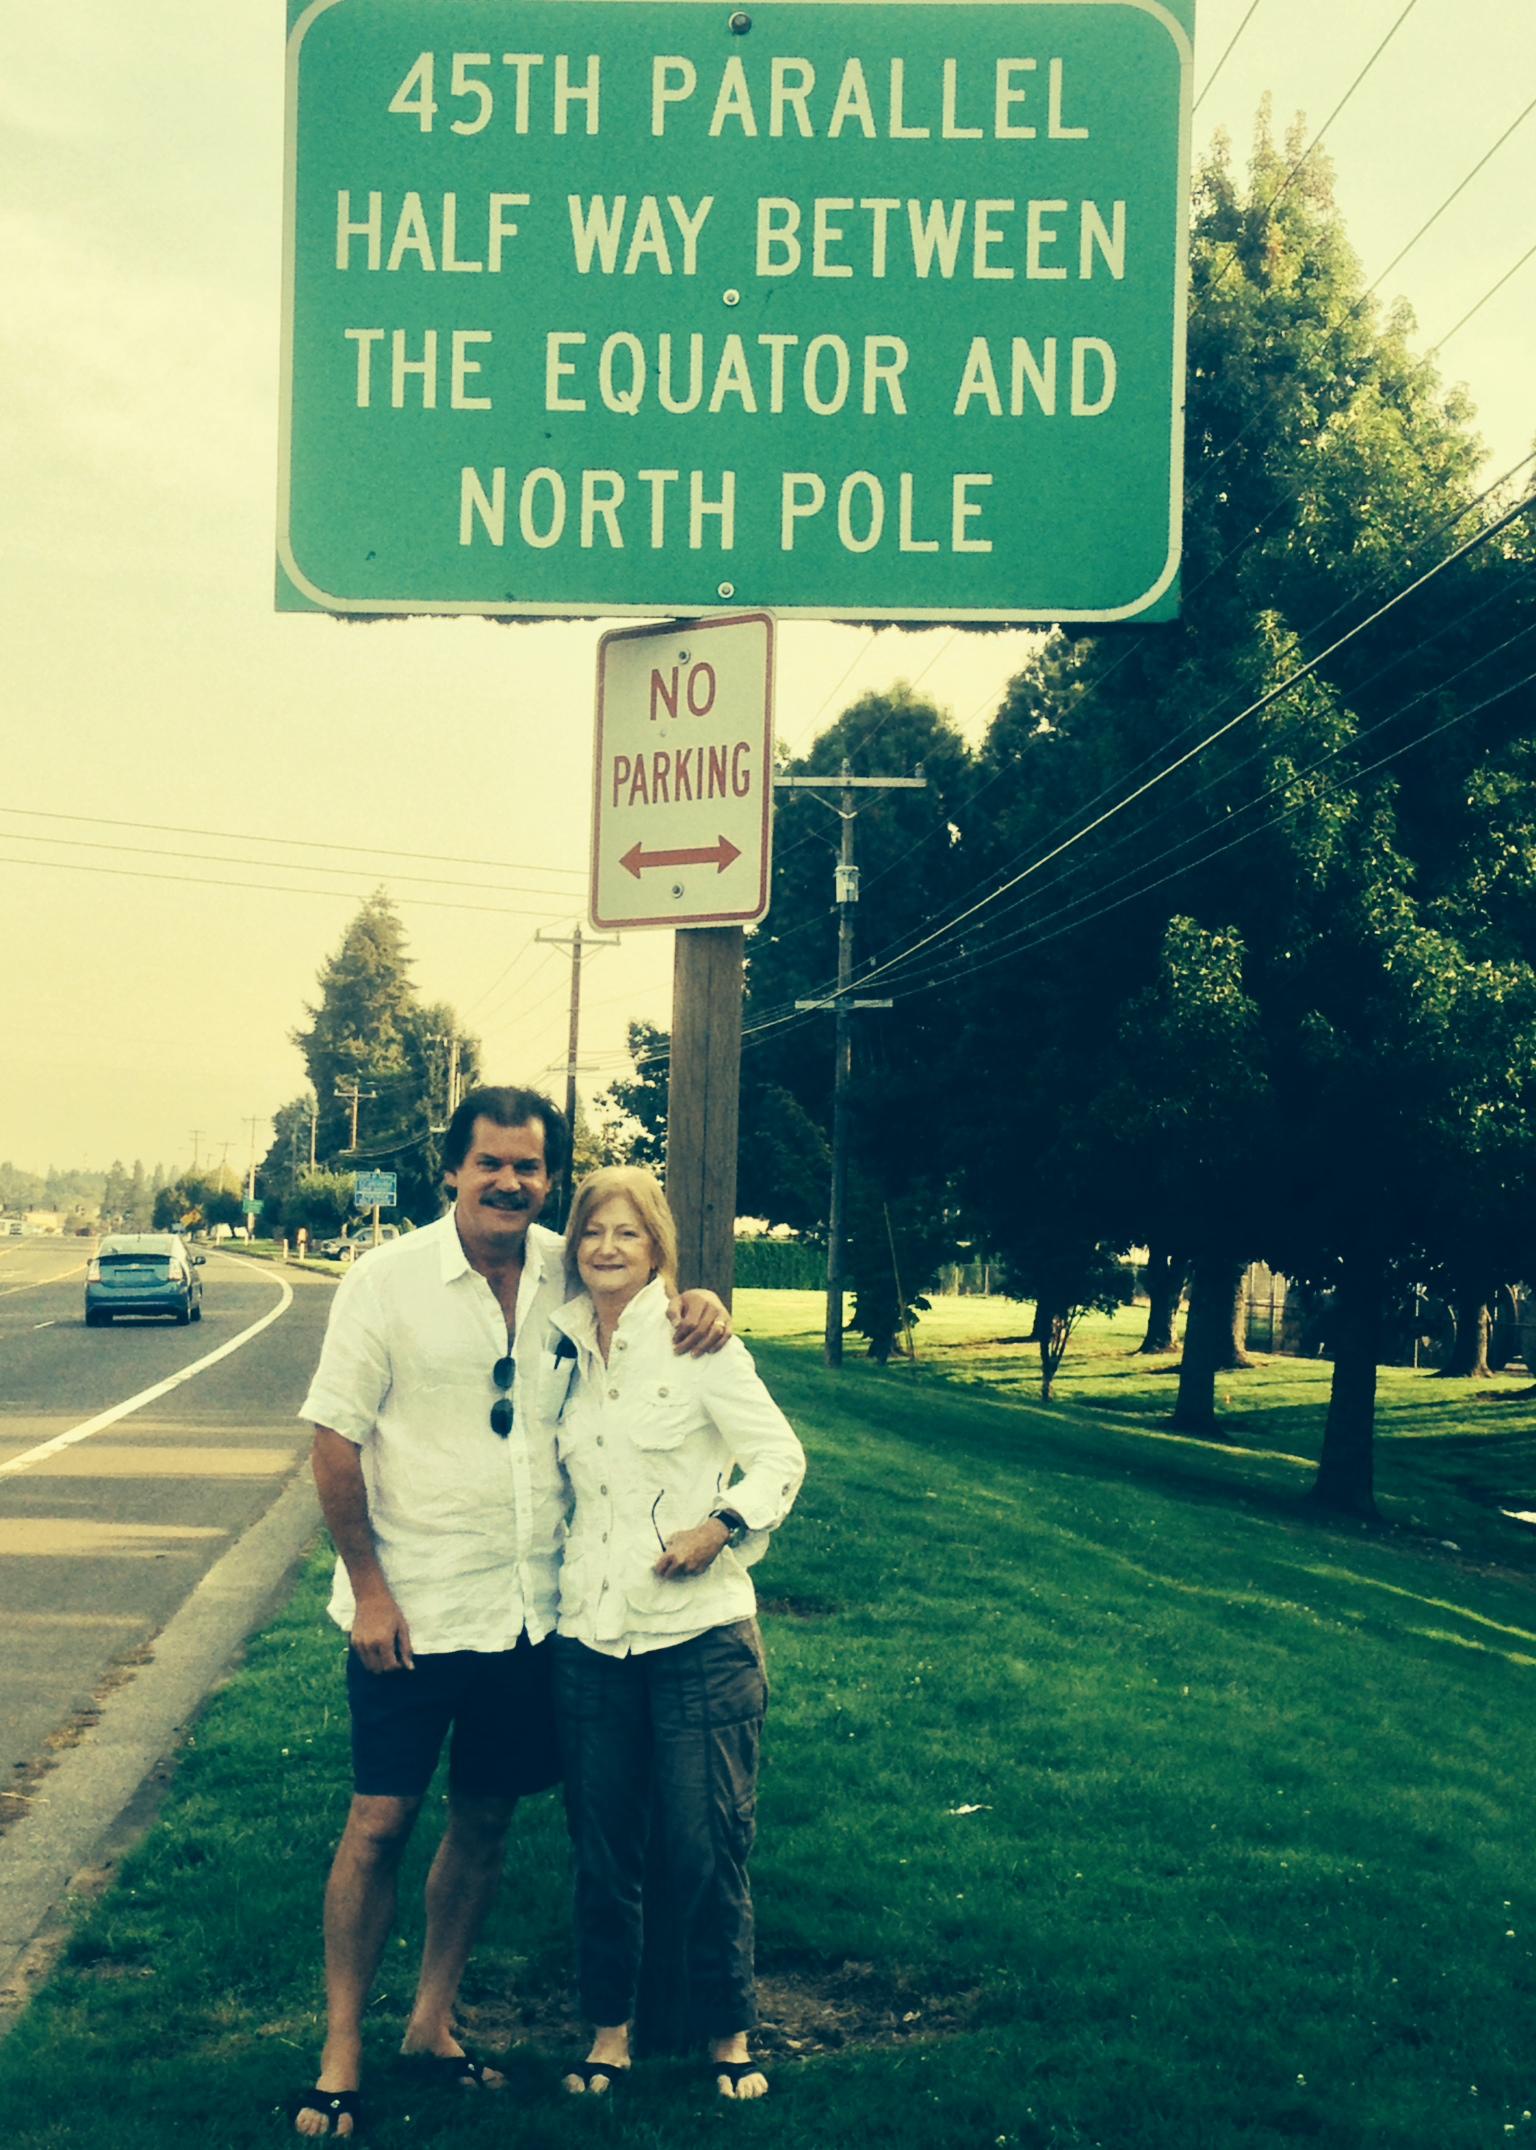 Photo opp at the 45th Parallel in  Willamette Valley.